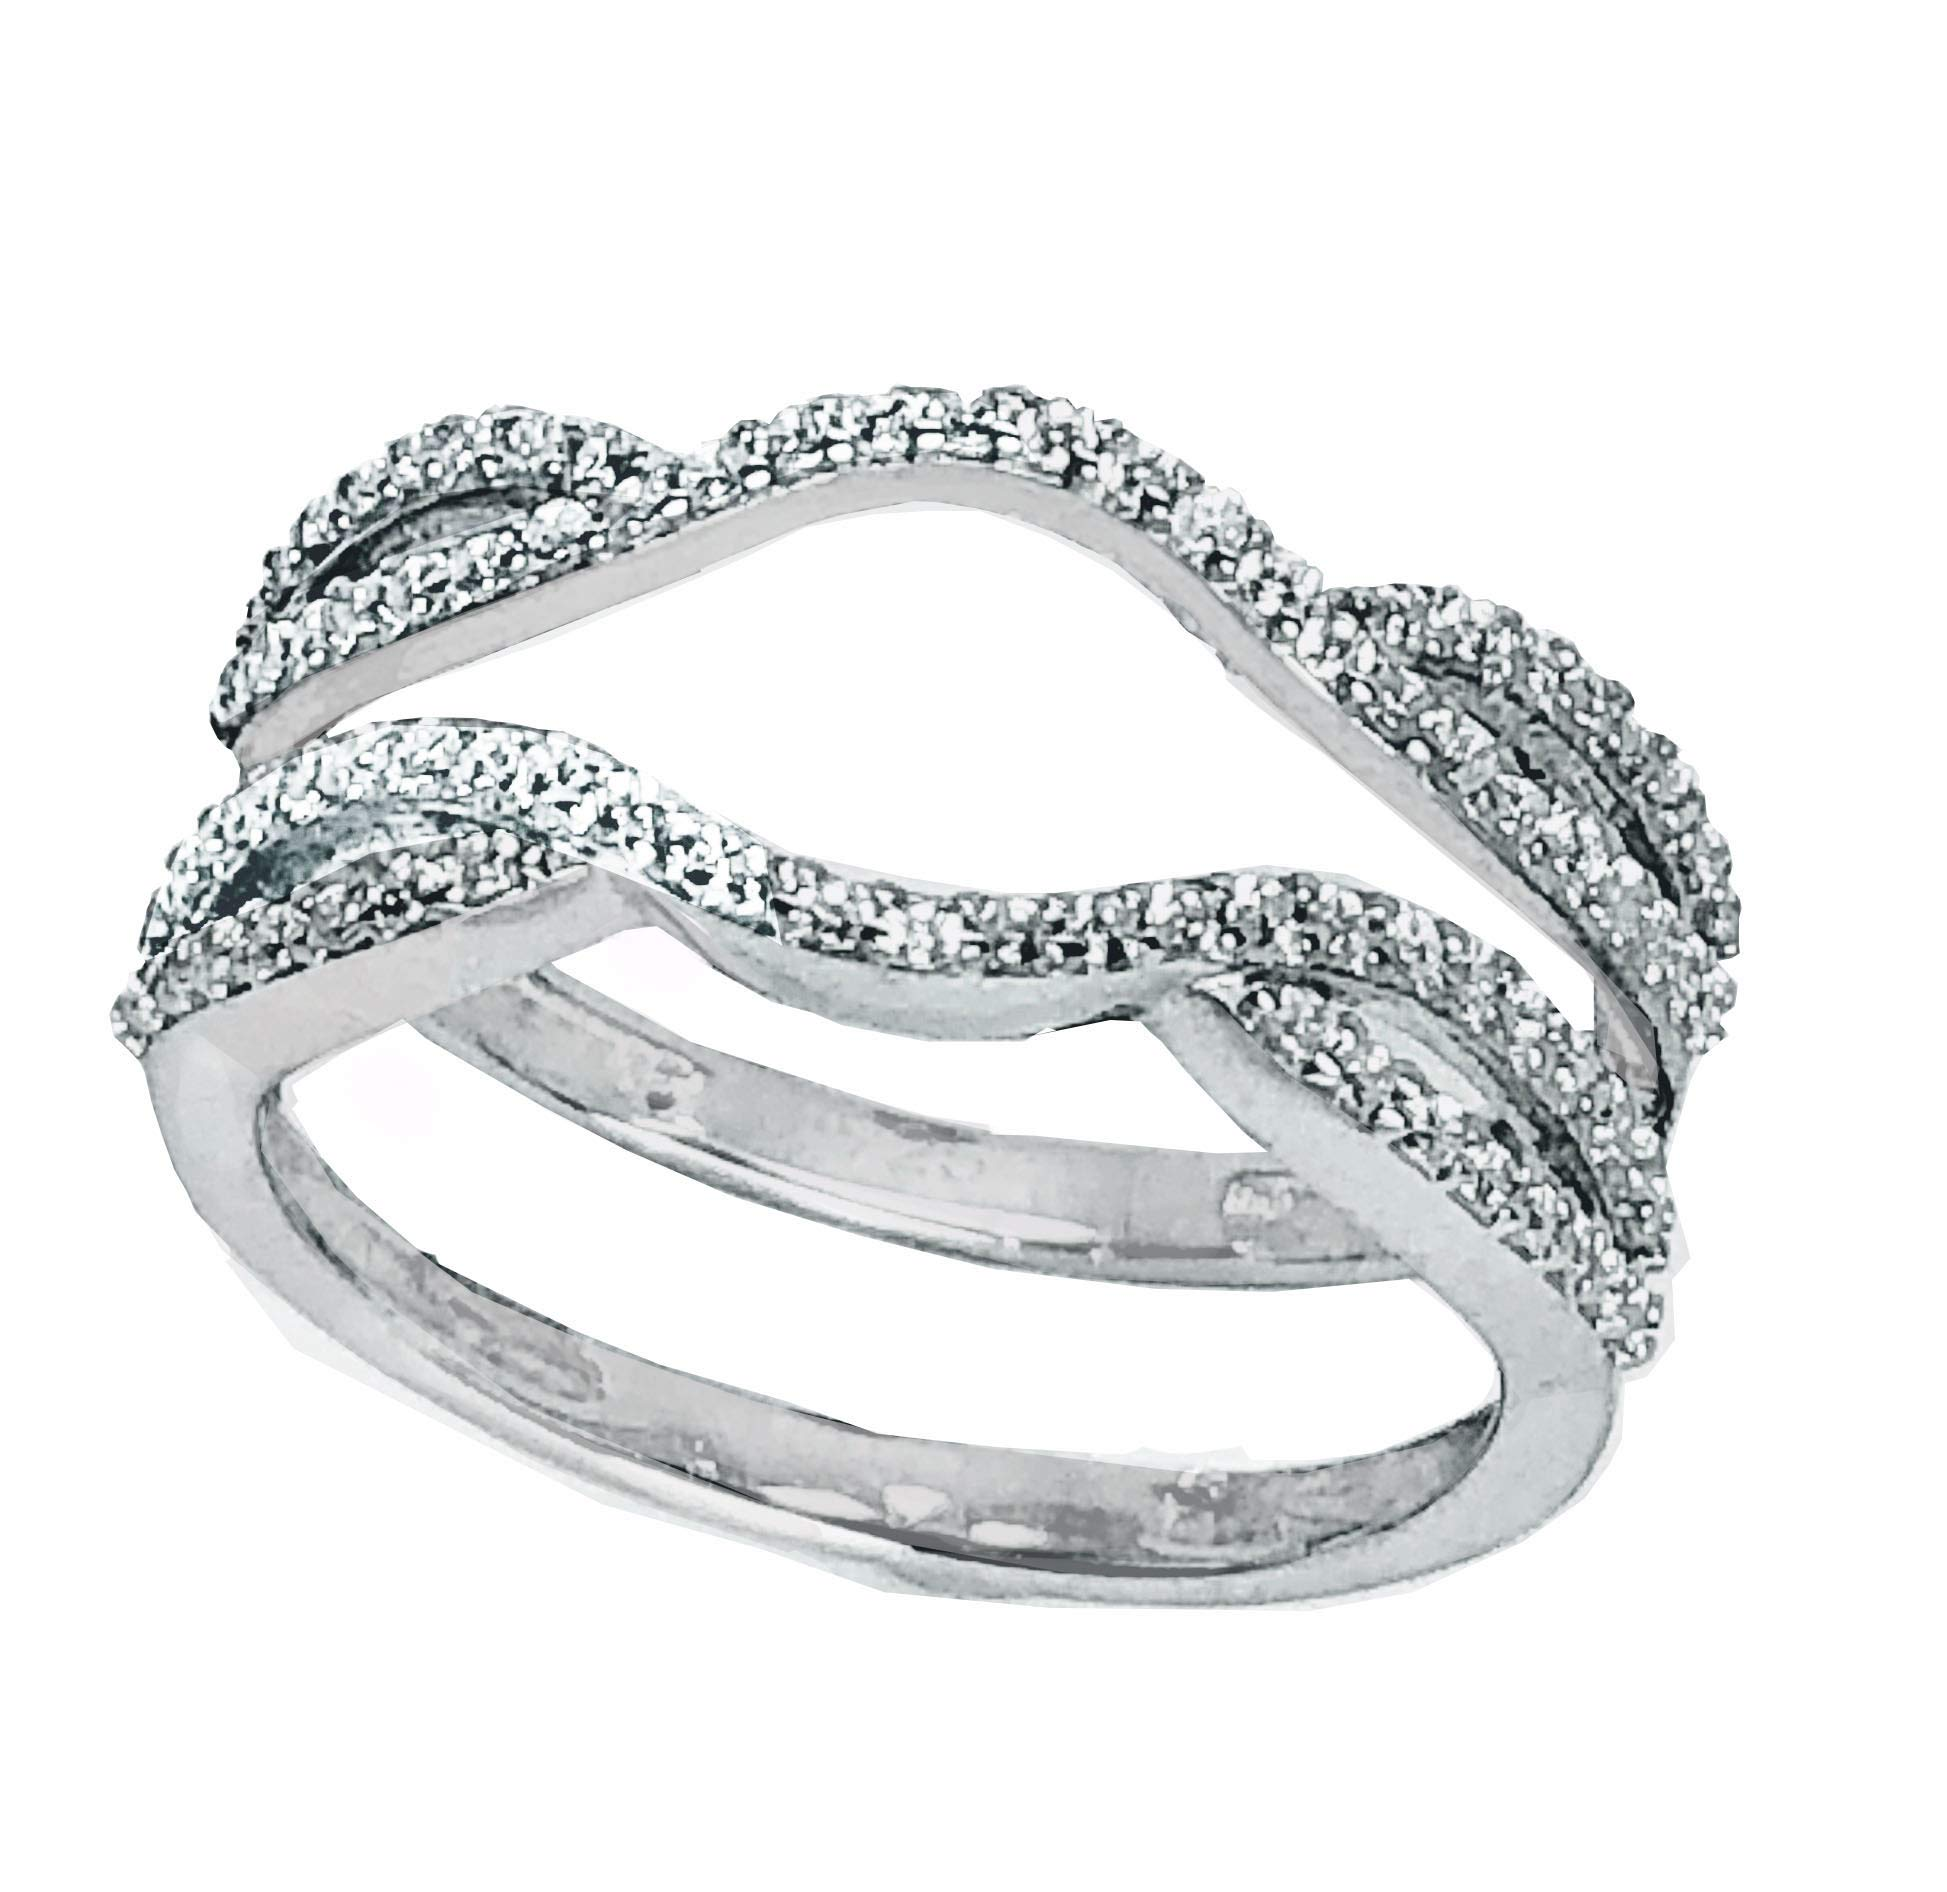 Wedding Band Guard Wrap for Women Engagement Ring Sterling Silver Size 8 by LaRaso & Co